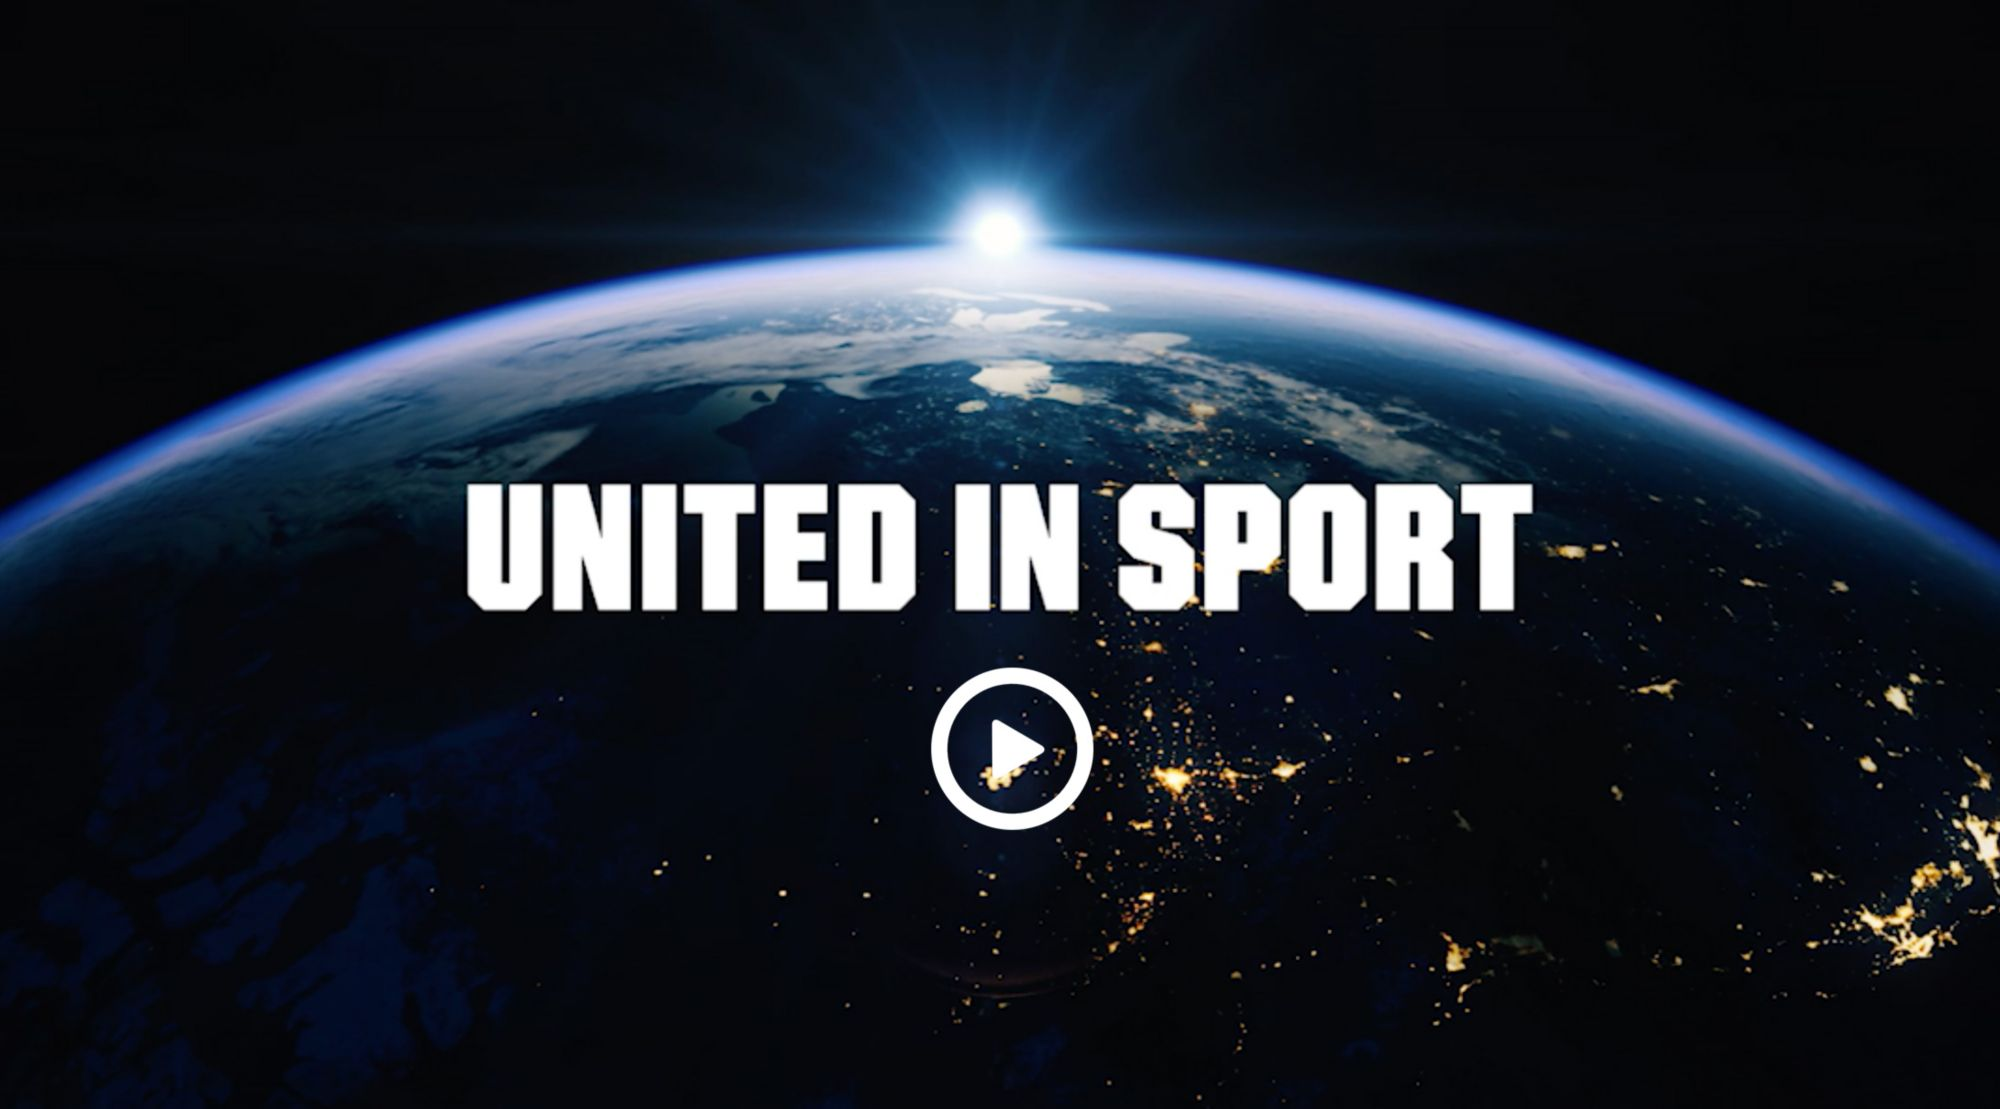 United In Sport - Video